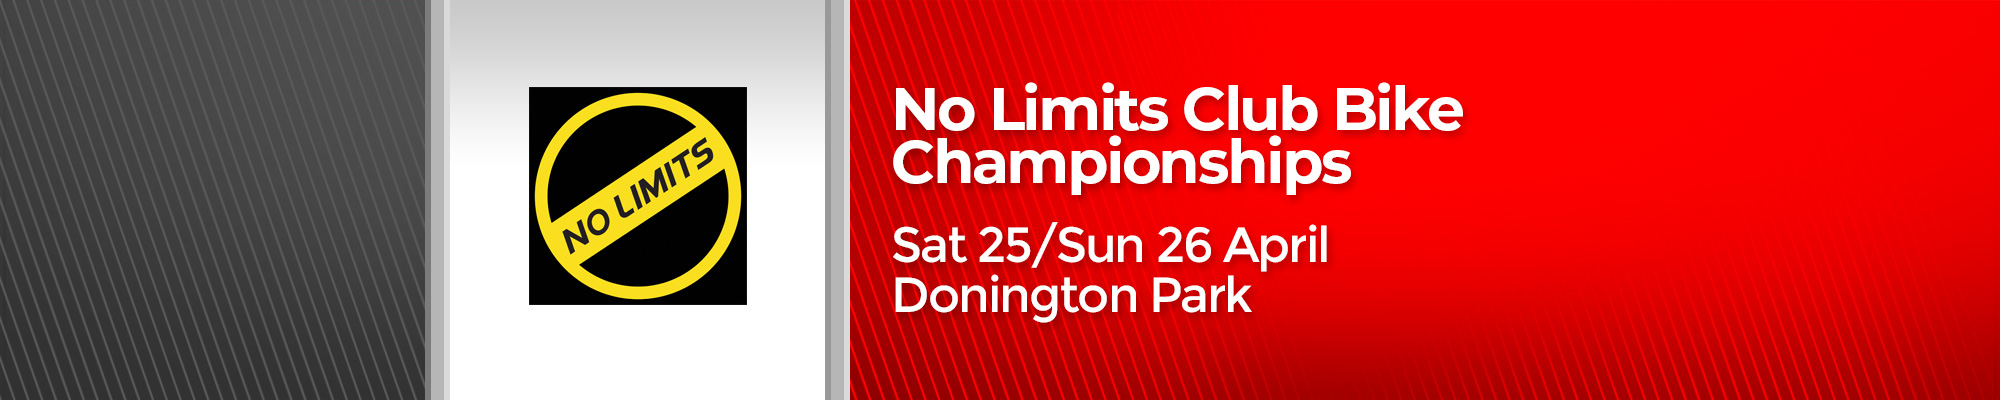 No Limits Racing Club Bike Championships - POSTPONED